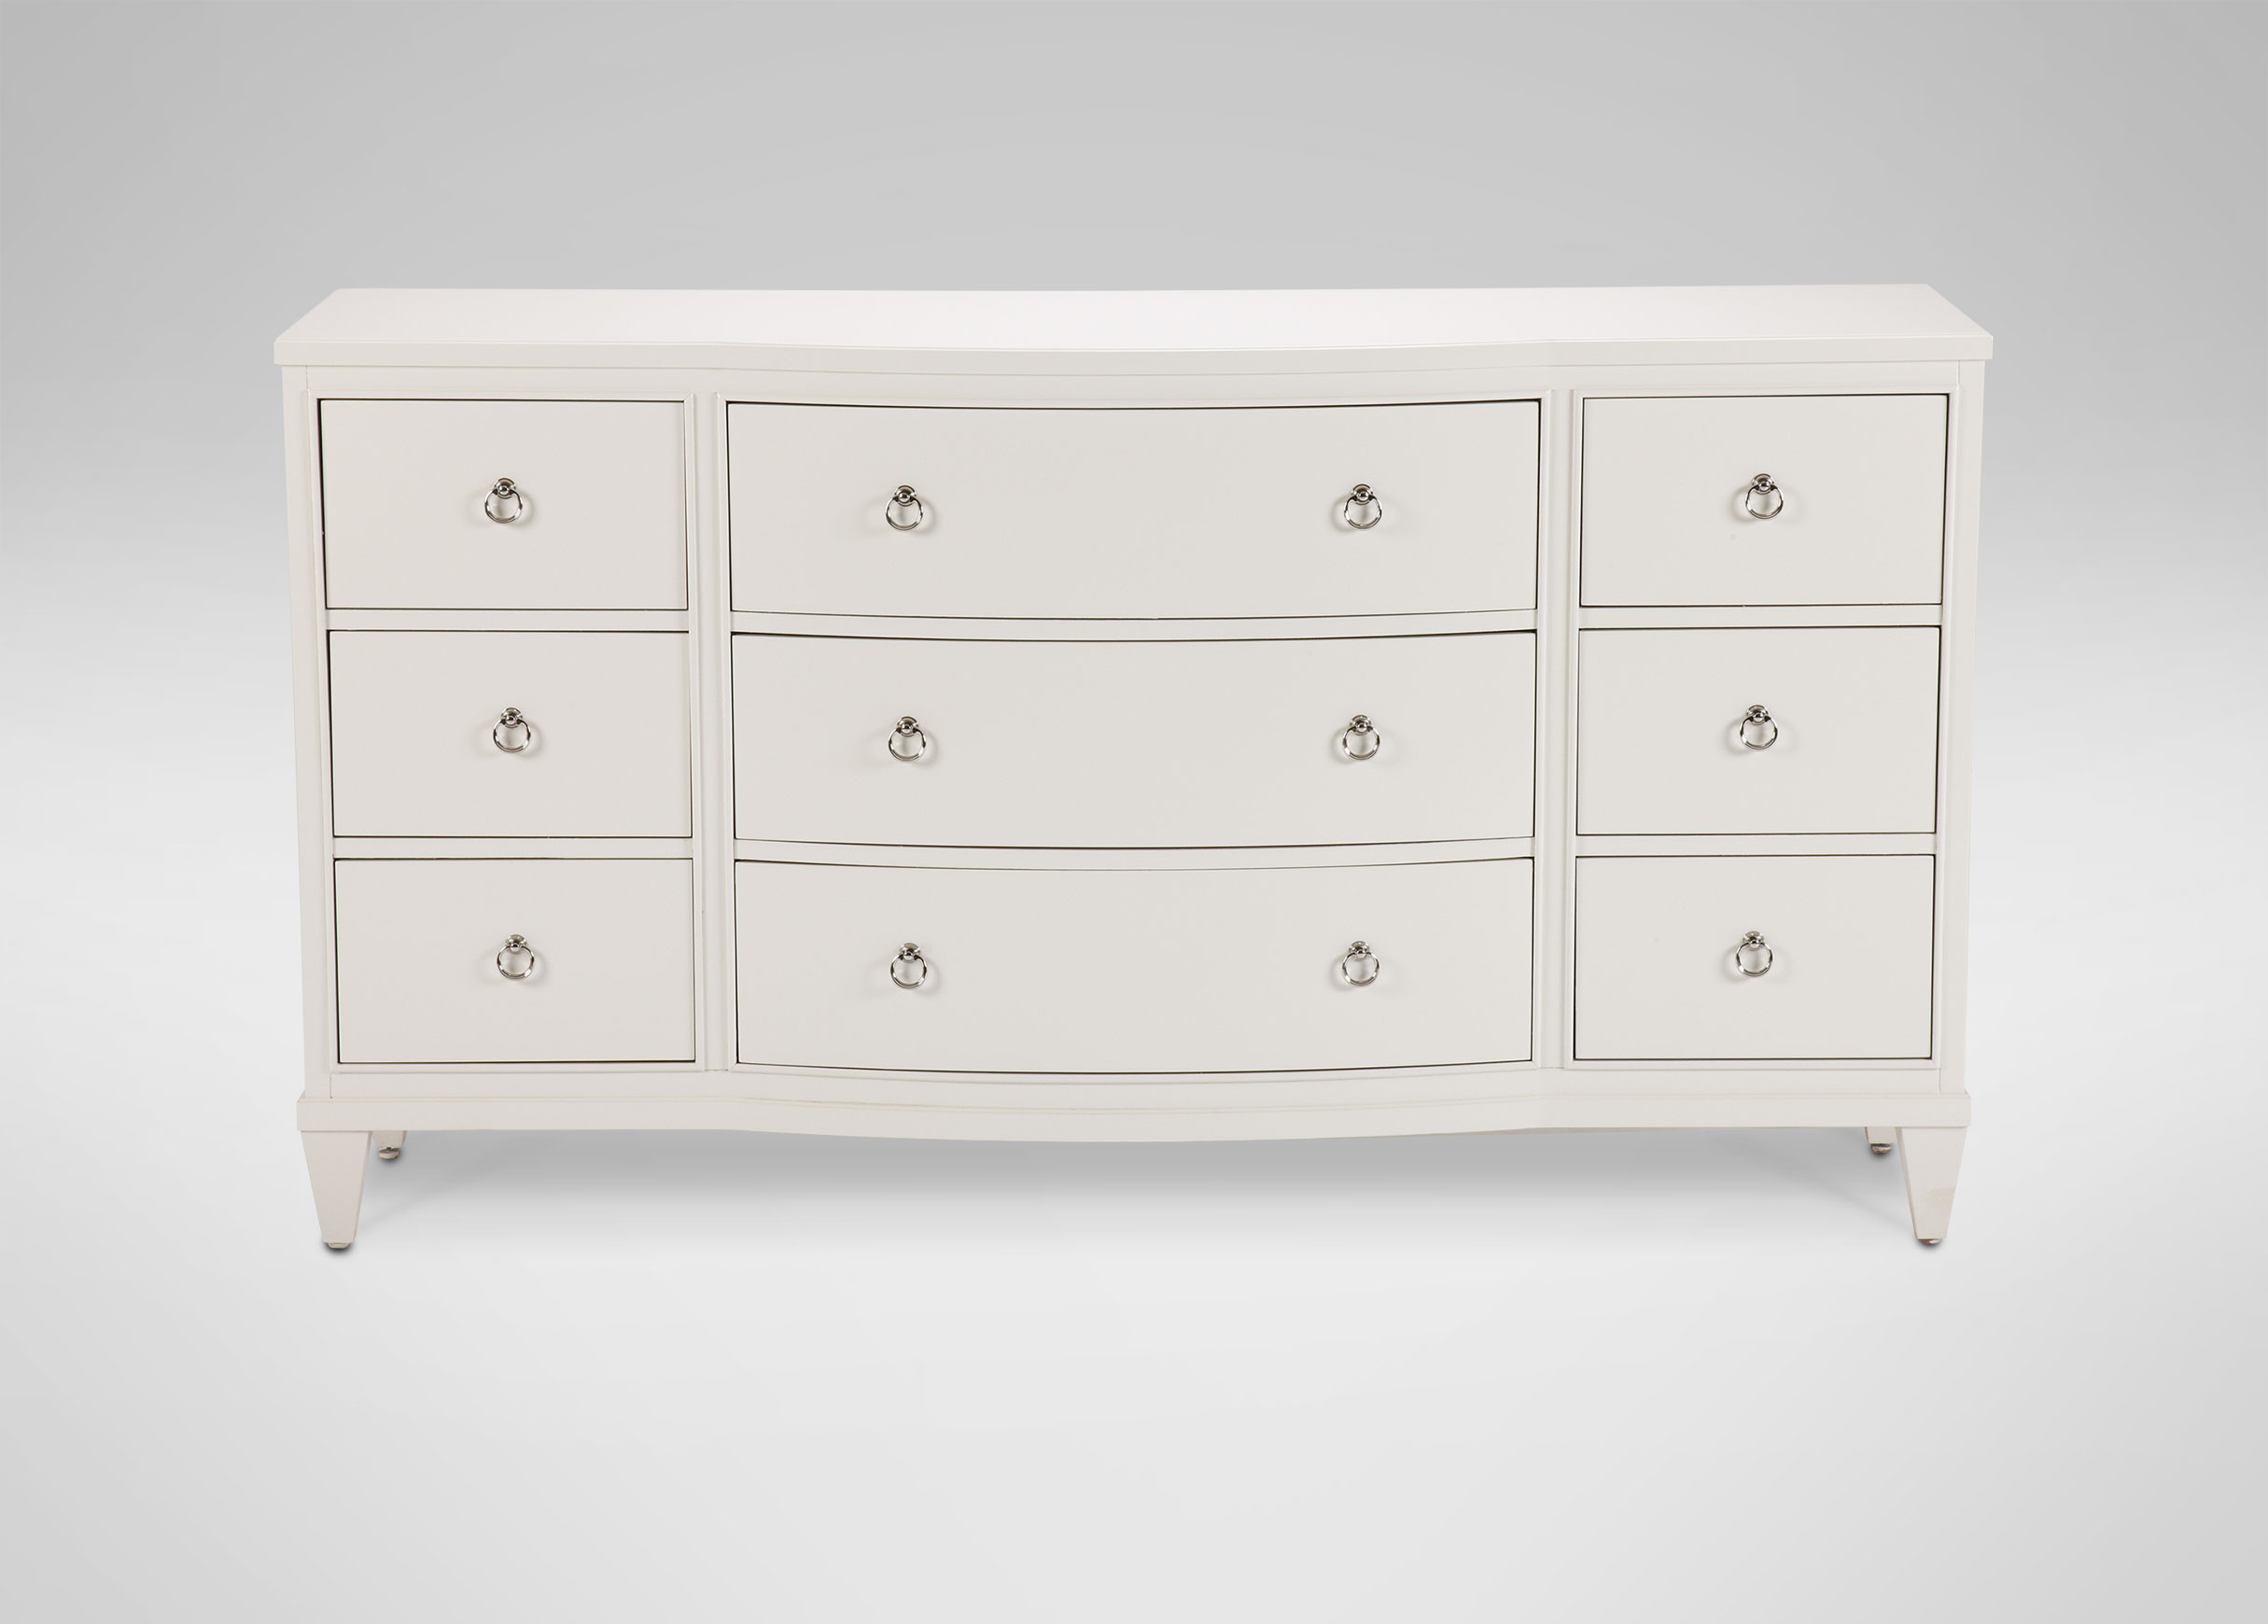 Dresser Dimensions heston dresser | dressers & chests